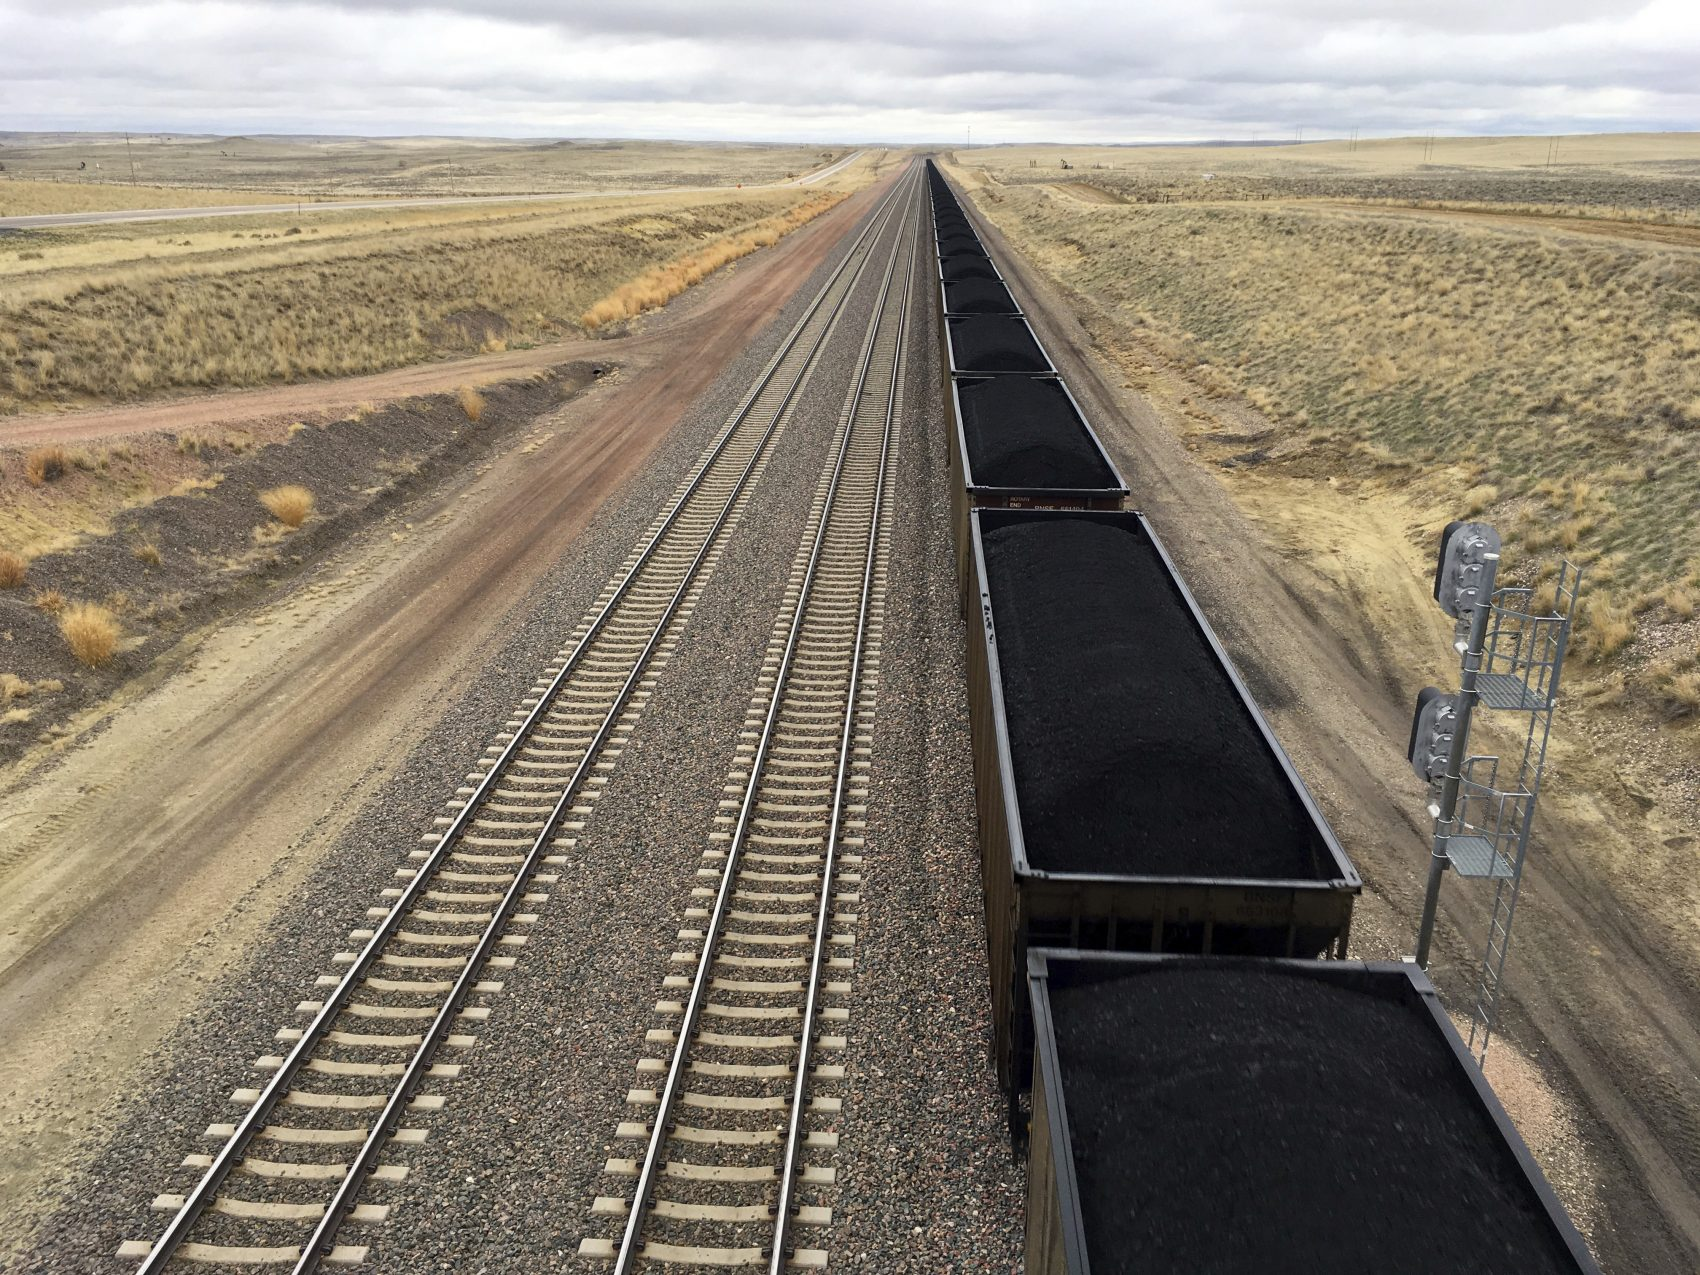 A train near hauls coal mined from Wyoming's Powder River Basin near Bill, Wyo., Tuesday, March 28, 2017. President Donald Trump's lifting of a federal coal leasing moratorium issued last year by President Barack Obama will allow new leasing of federal coal to resume in the basin and elsewhere. (Mead Gruver/AP)